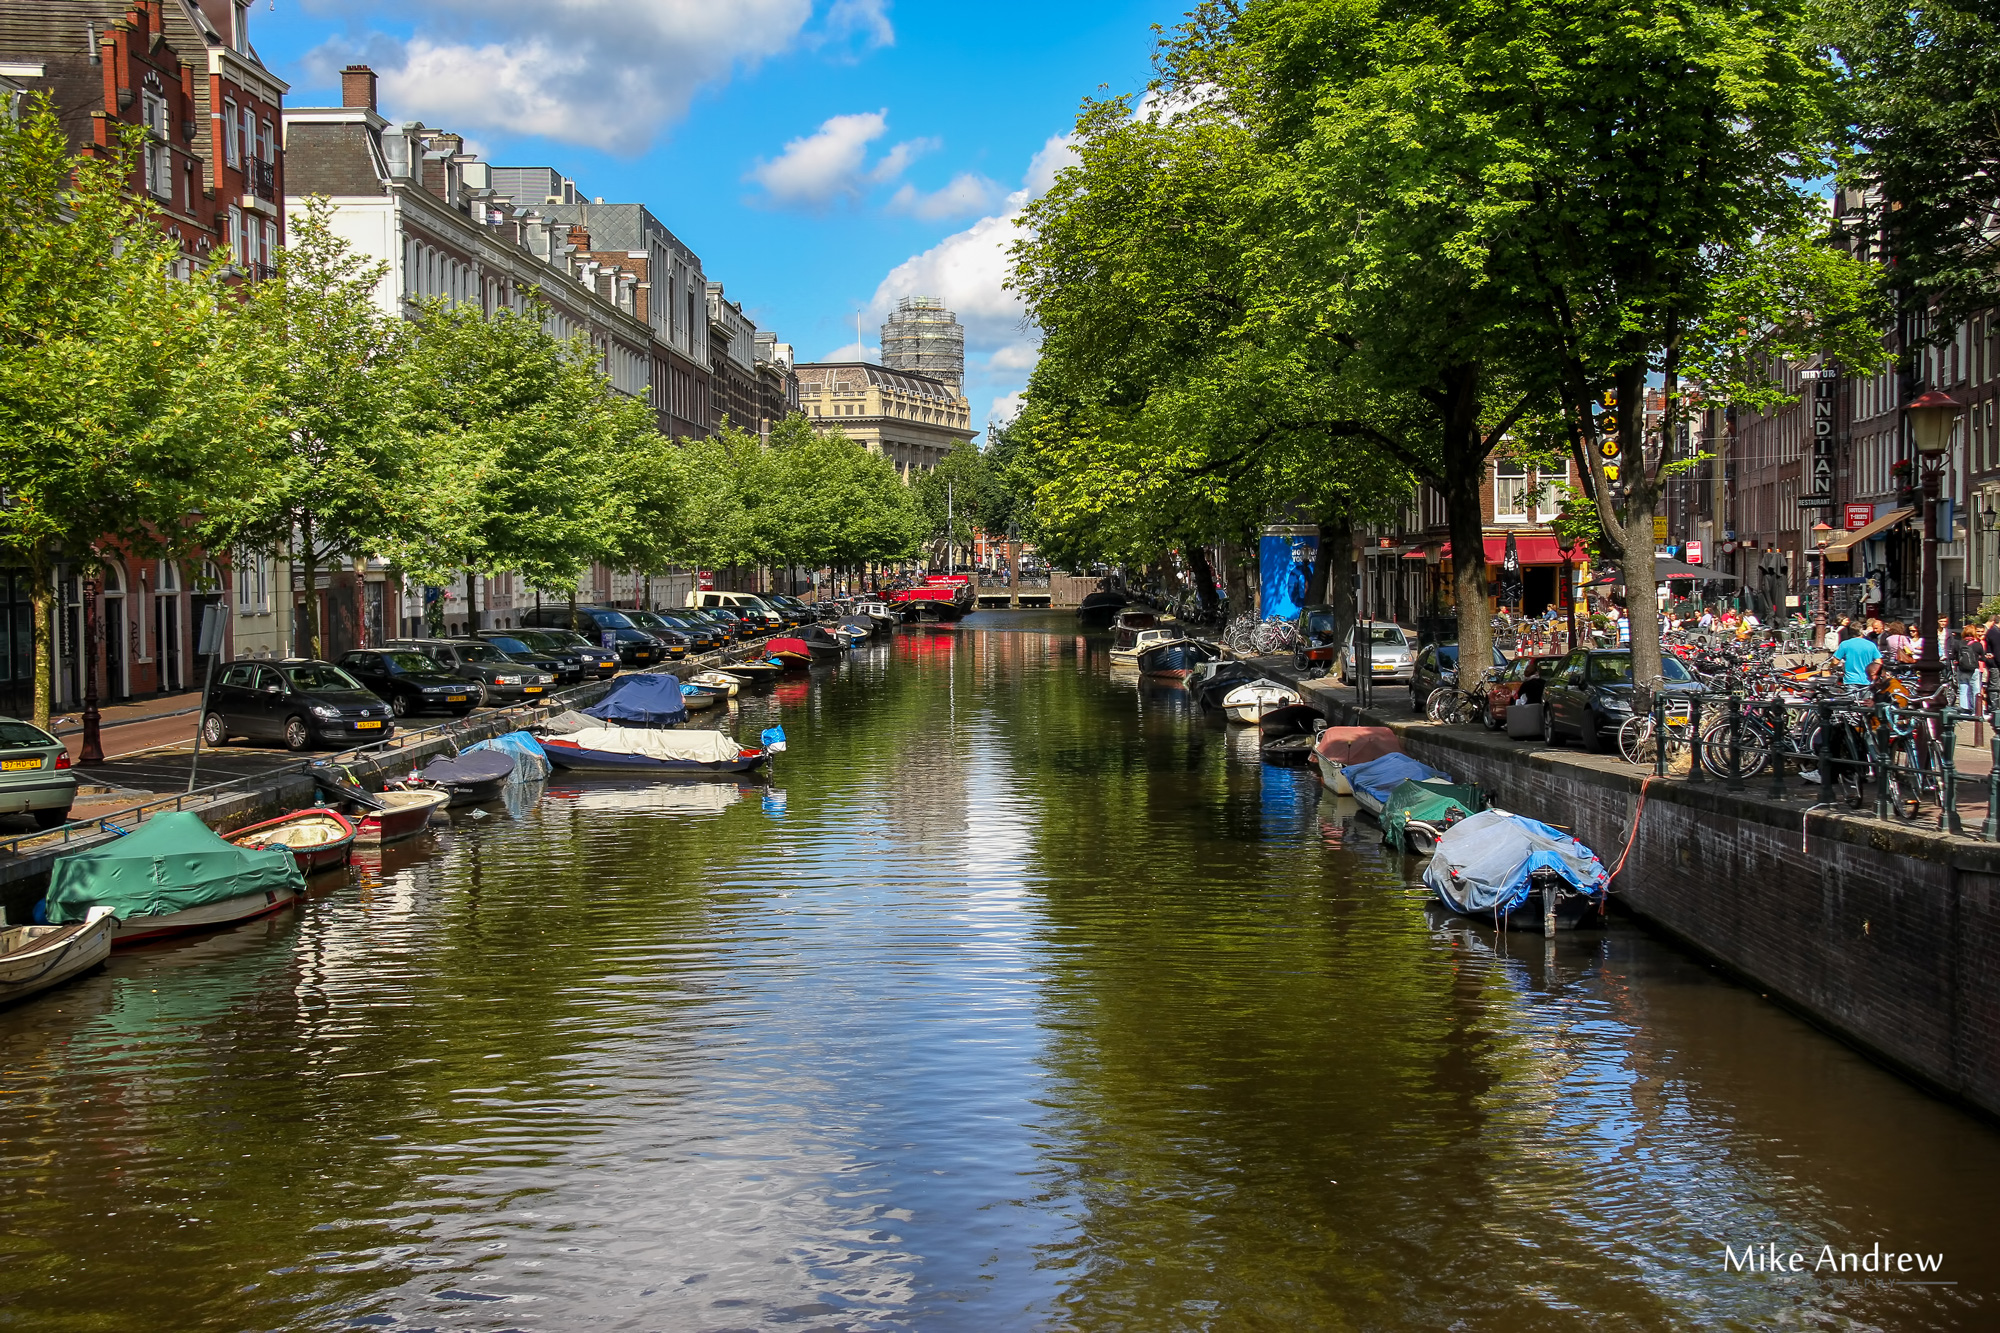 amsterdam canals in colour - Mike Andrew Photography